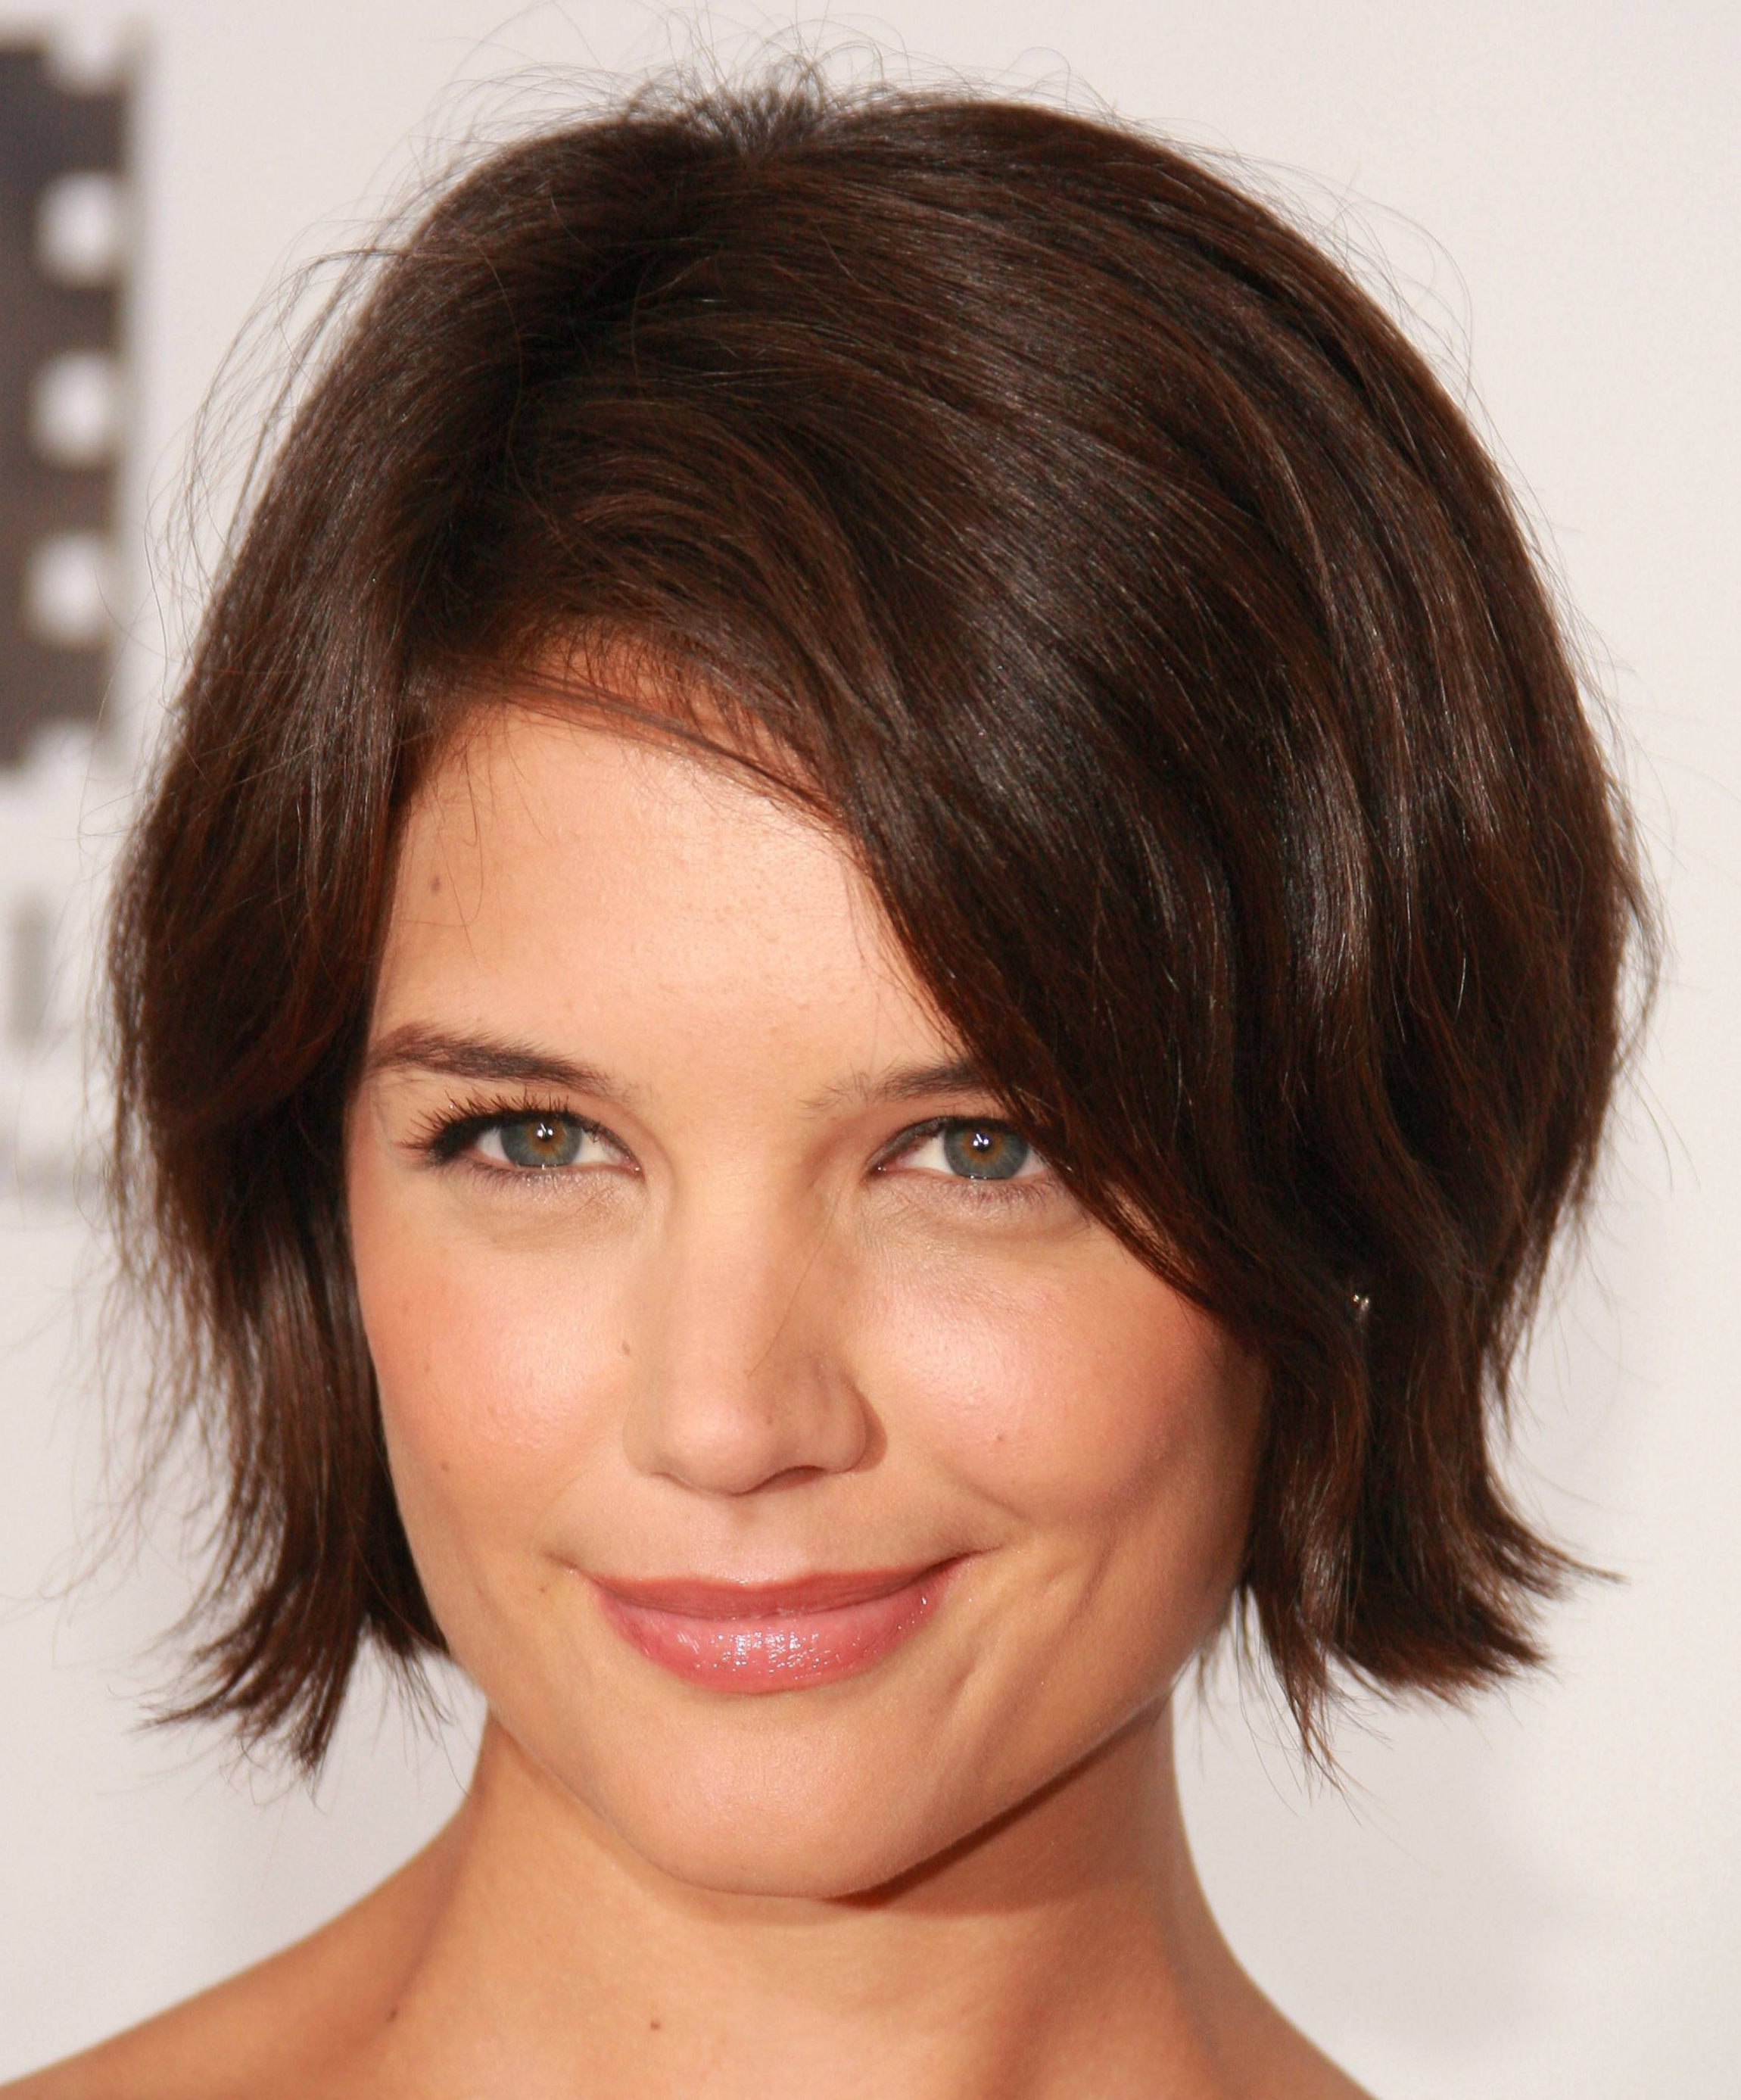 Best Short Hairstyles – Cute Hair Cut Guide For Round Face Shape With Regard To Short Hairstyles For Fine Hair And Fat Face (View 17 of 25)